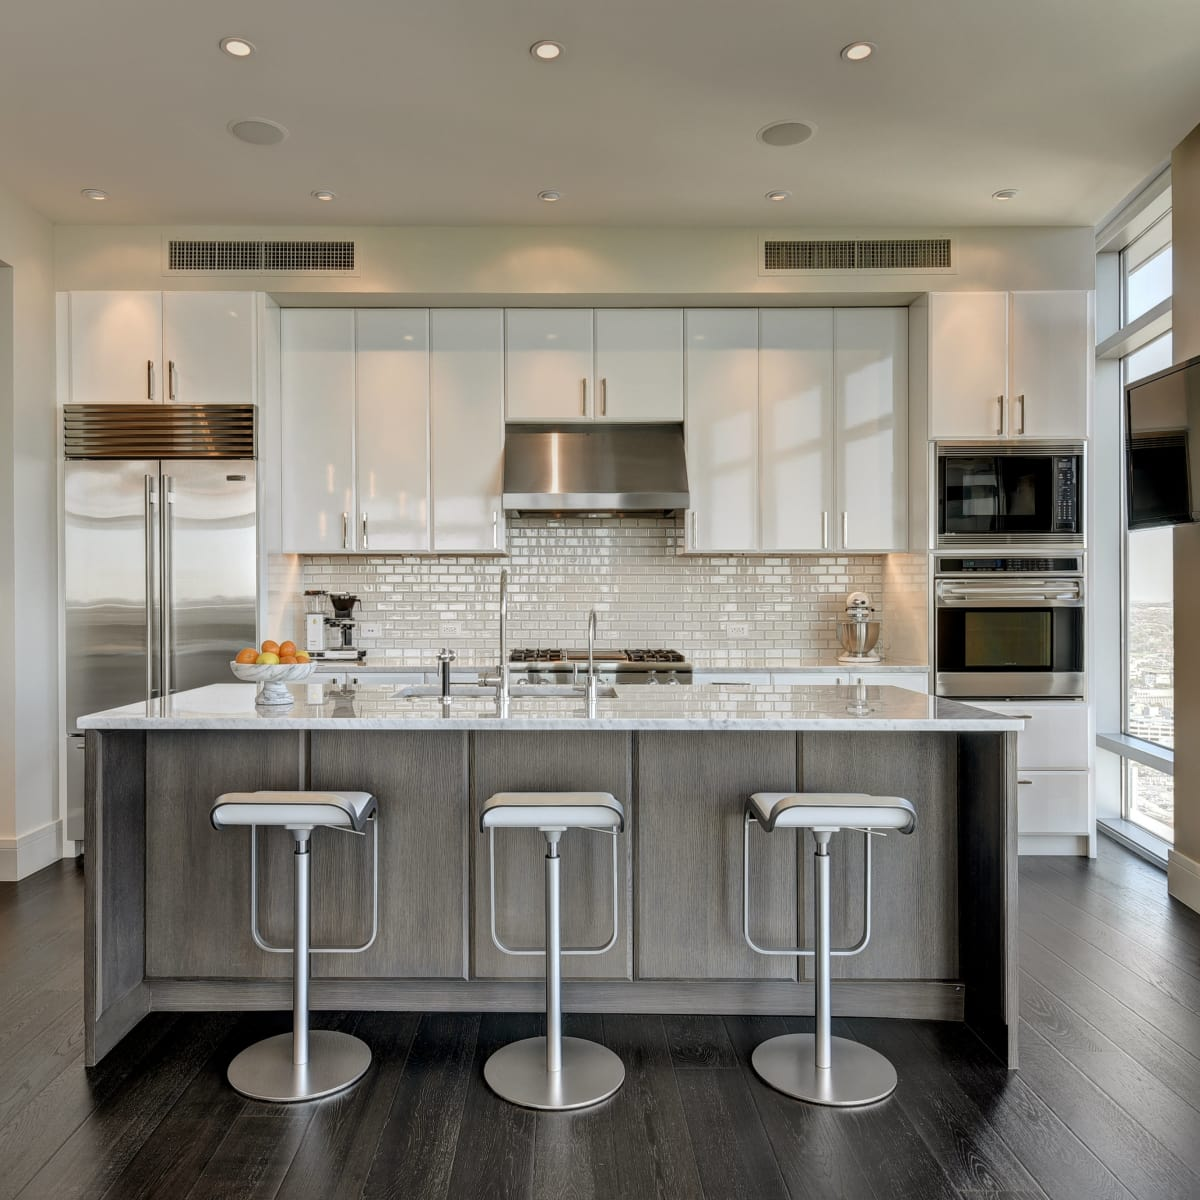 Austonian 33FF kitchen